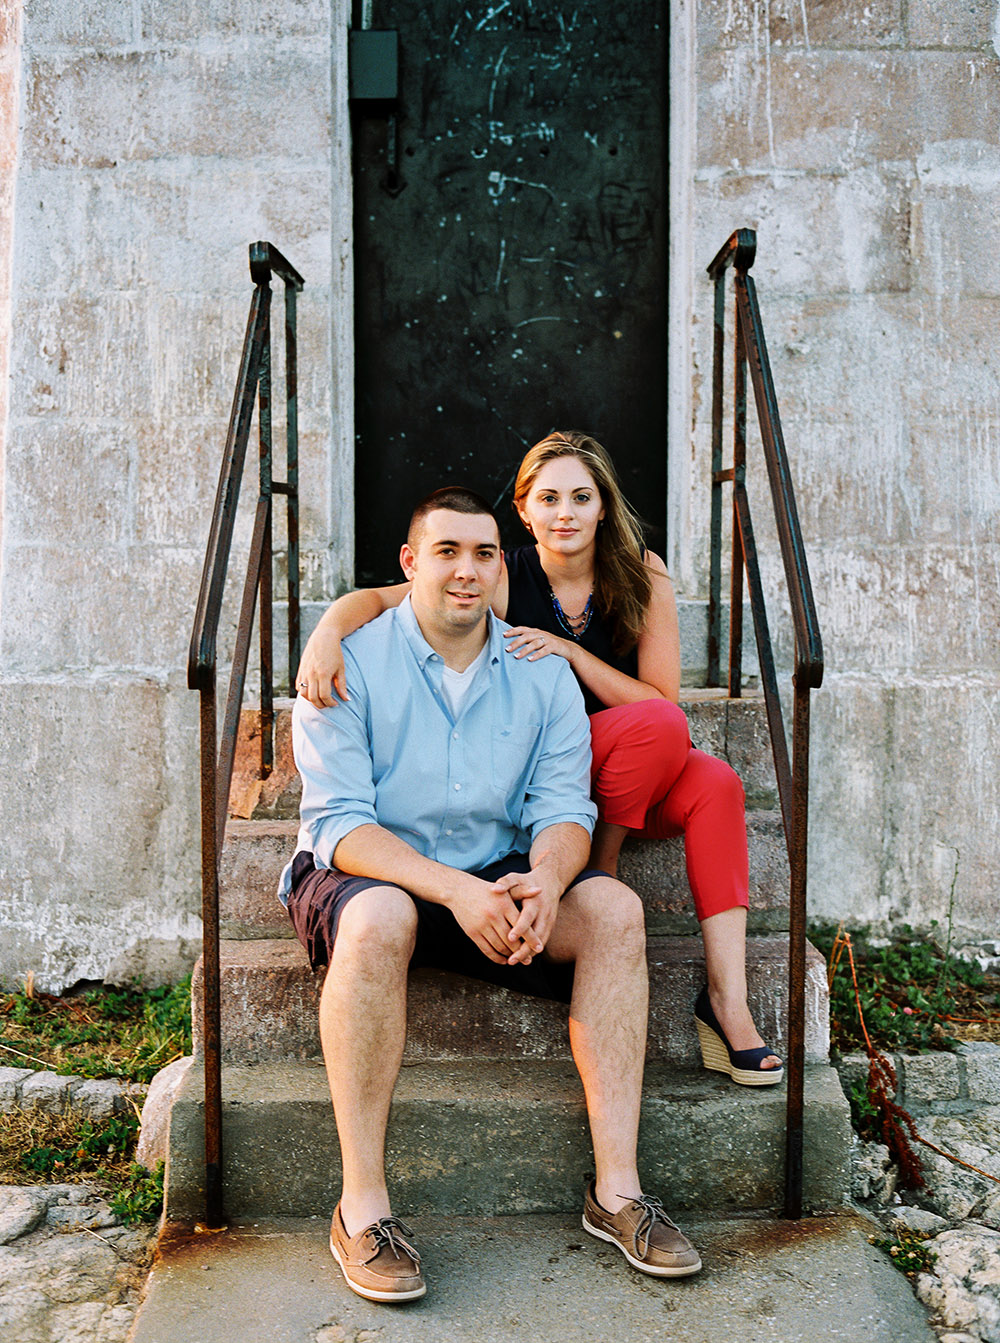 ct-engagement-photos-greg-lewis-photography-26